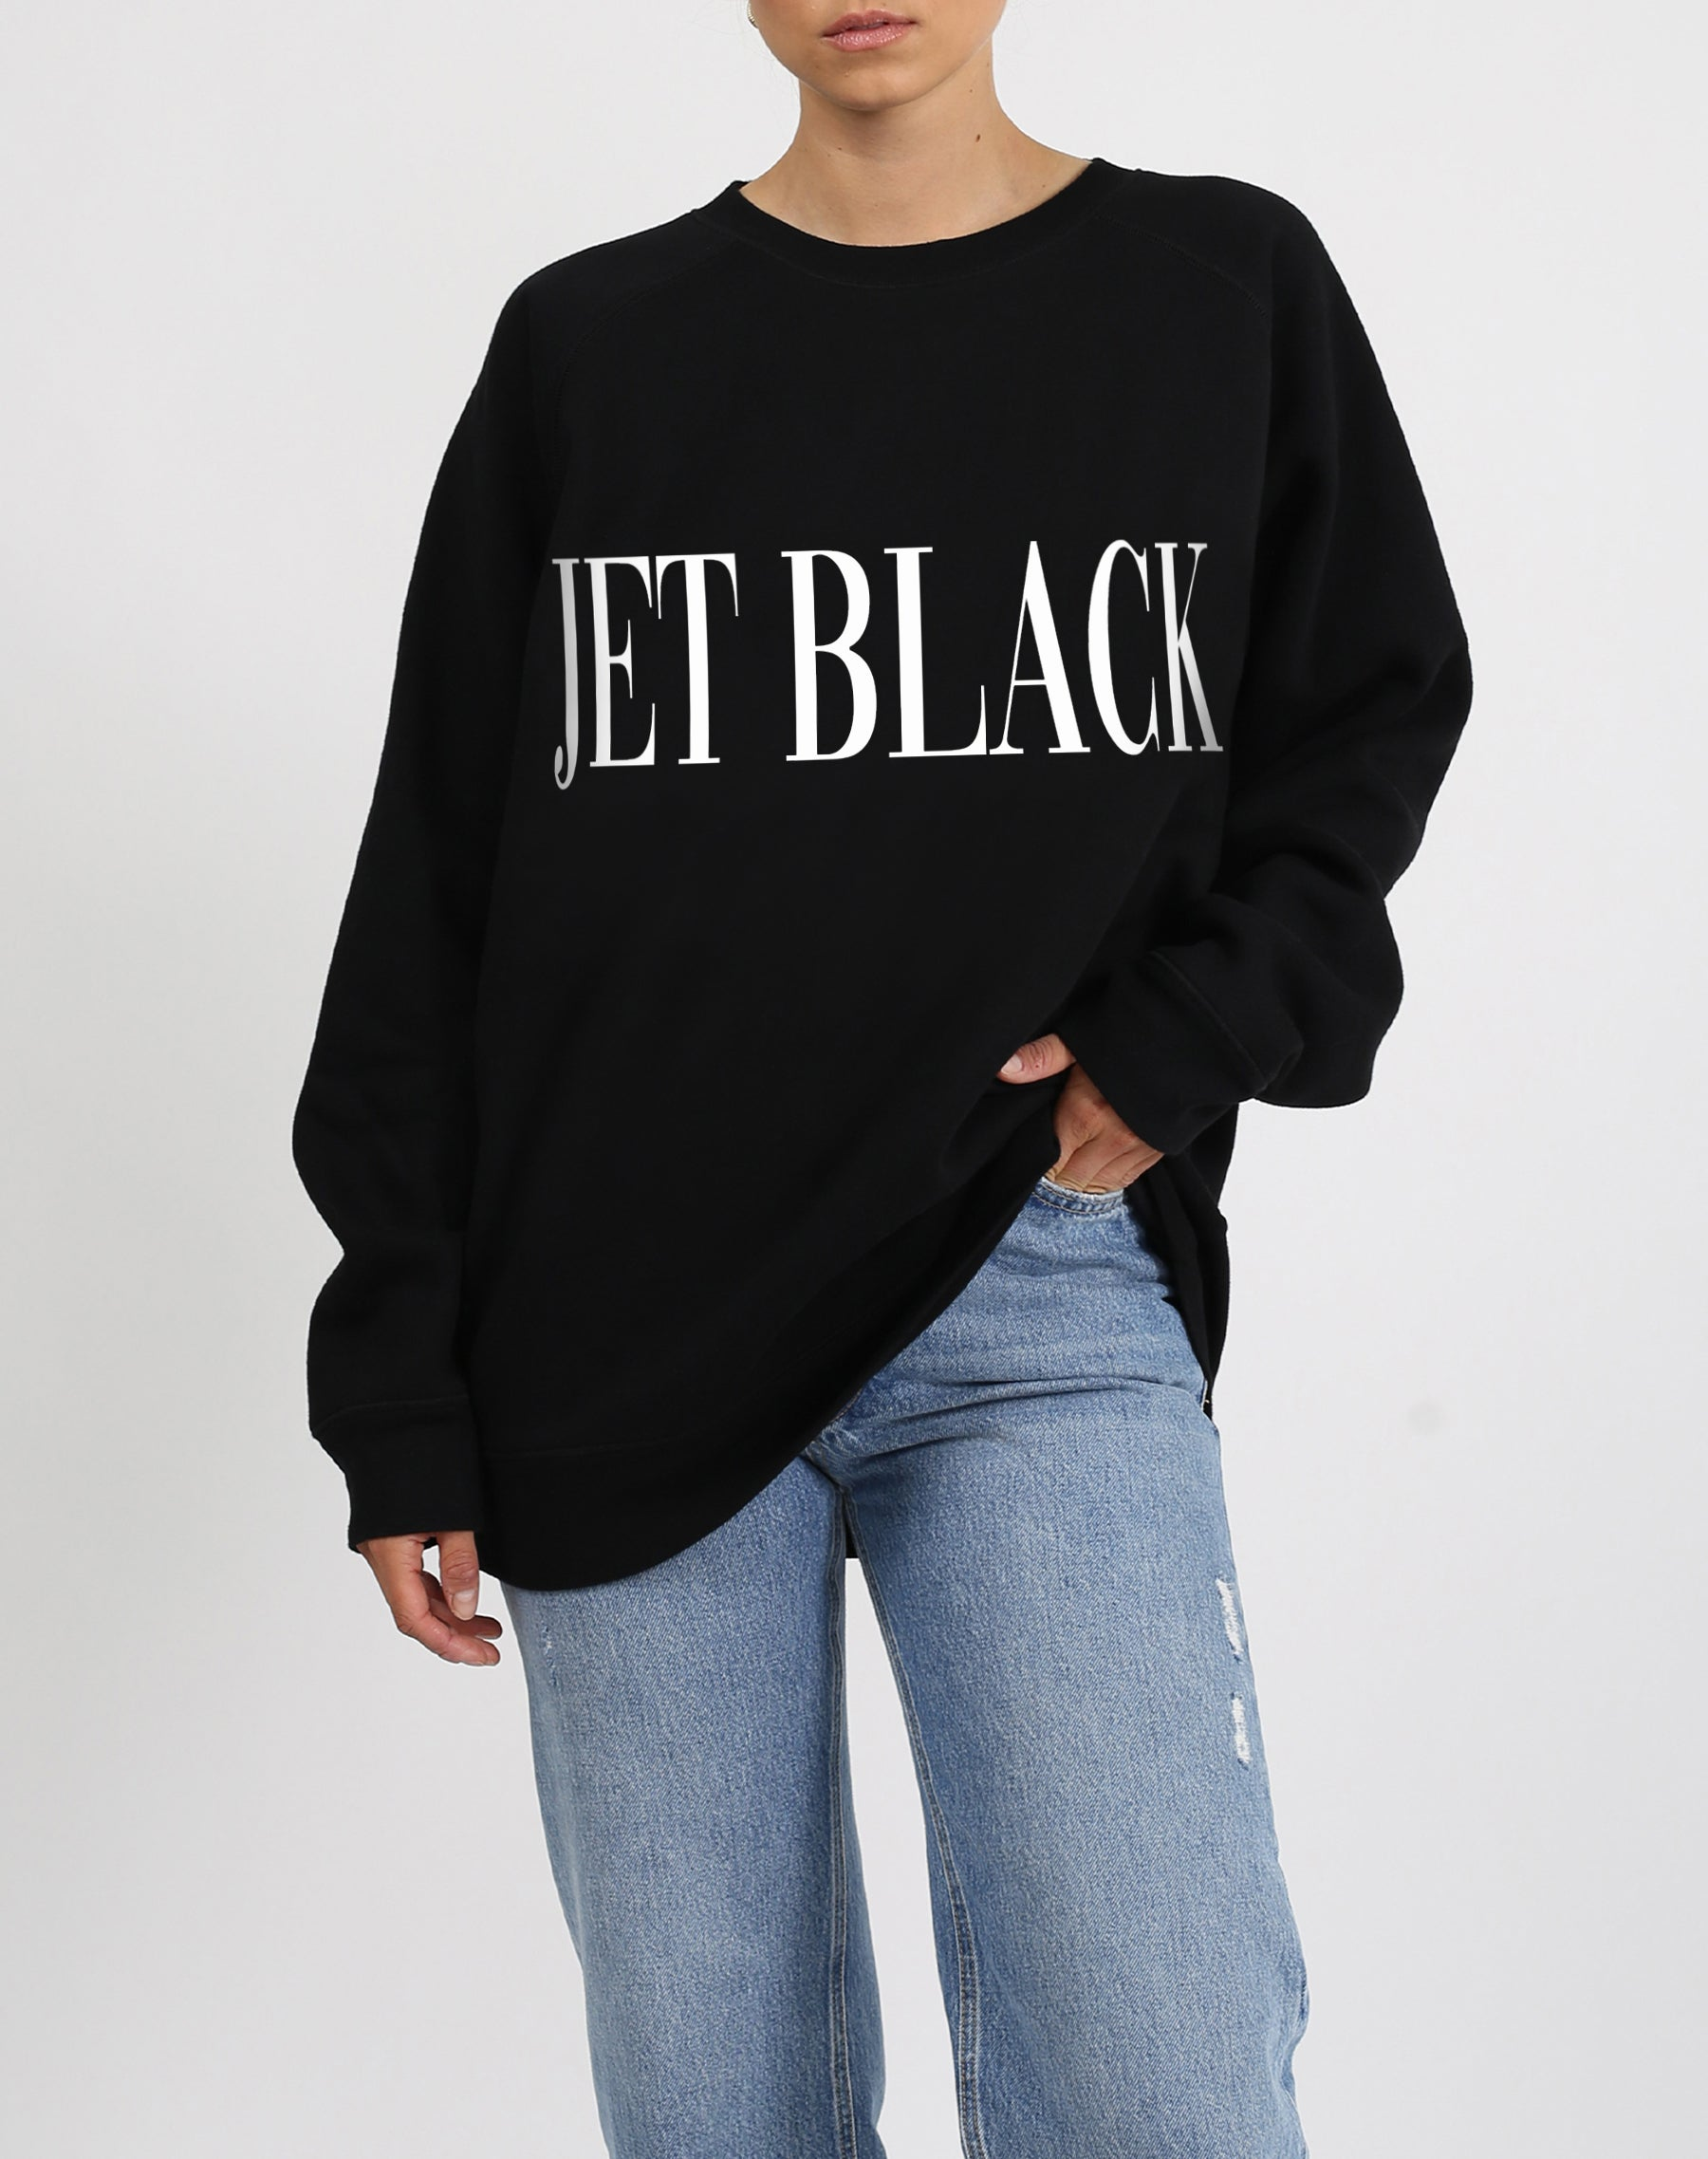 This is a photo of a model wearing the Lounge Jet Black Big Sister Crew Neck Sweatshirt in Black by Brunette the Label.'